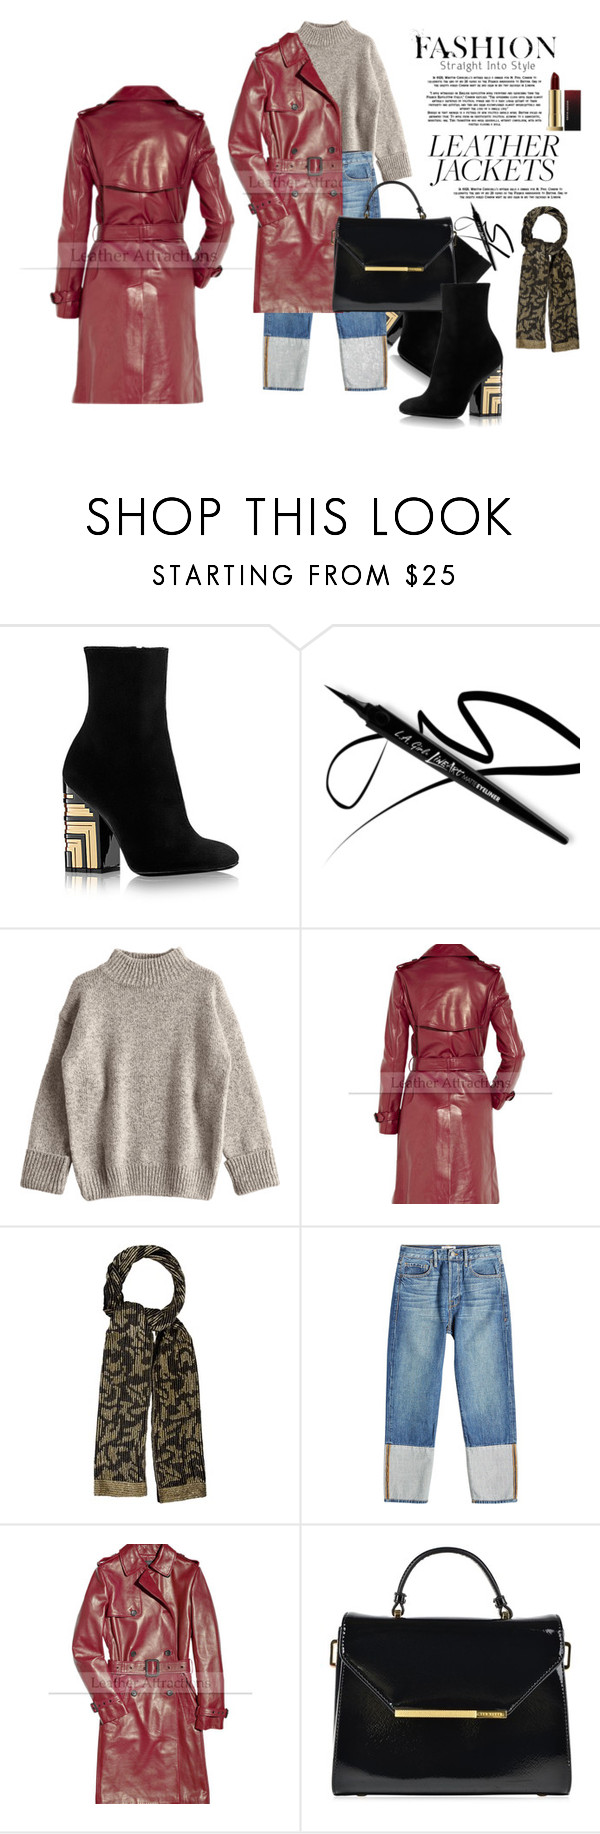 """""""Leather Jackets"""" by liviagb ❤ liked on Polyvore featuring Adrienne Landau, Frame, Ted Baker, simple and leatherjackets"""